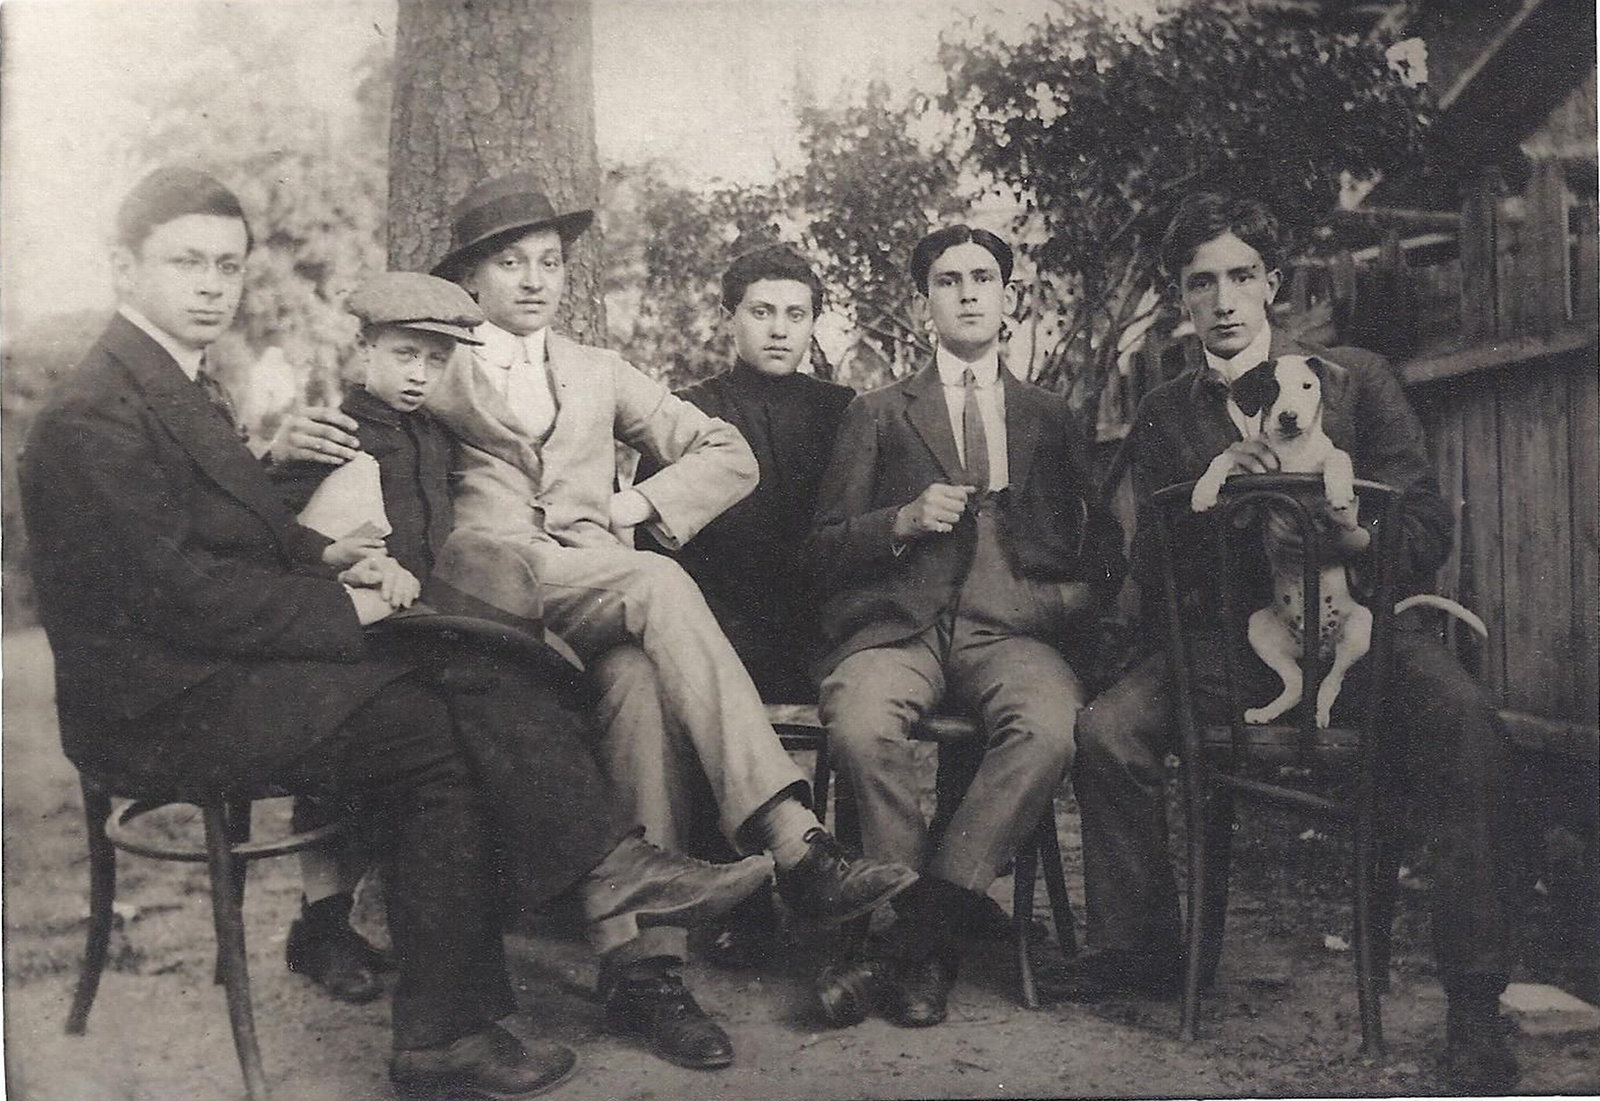 Tristan Tzara, Georges Janco, Marcel Janco, Jules Janco, their friend Poldi Chapier, and Ion Vinea, Bucharest, 1913, , Josine Ianco-Starrels Collection, Copyright Not Evaluated